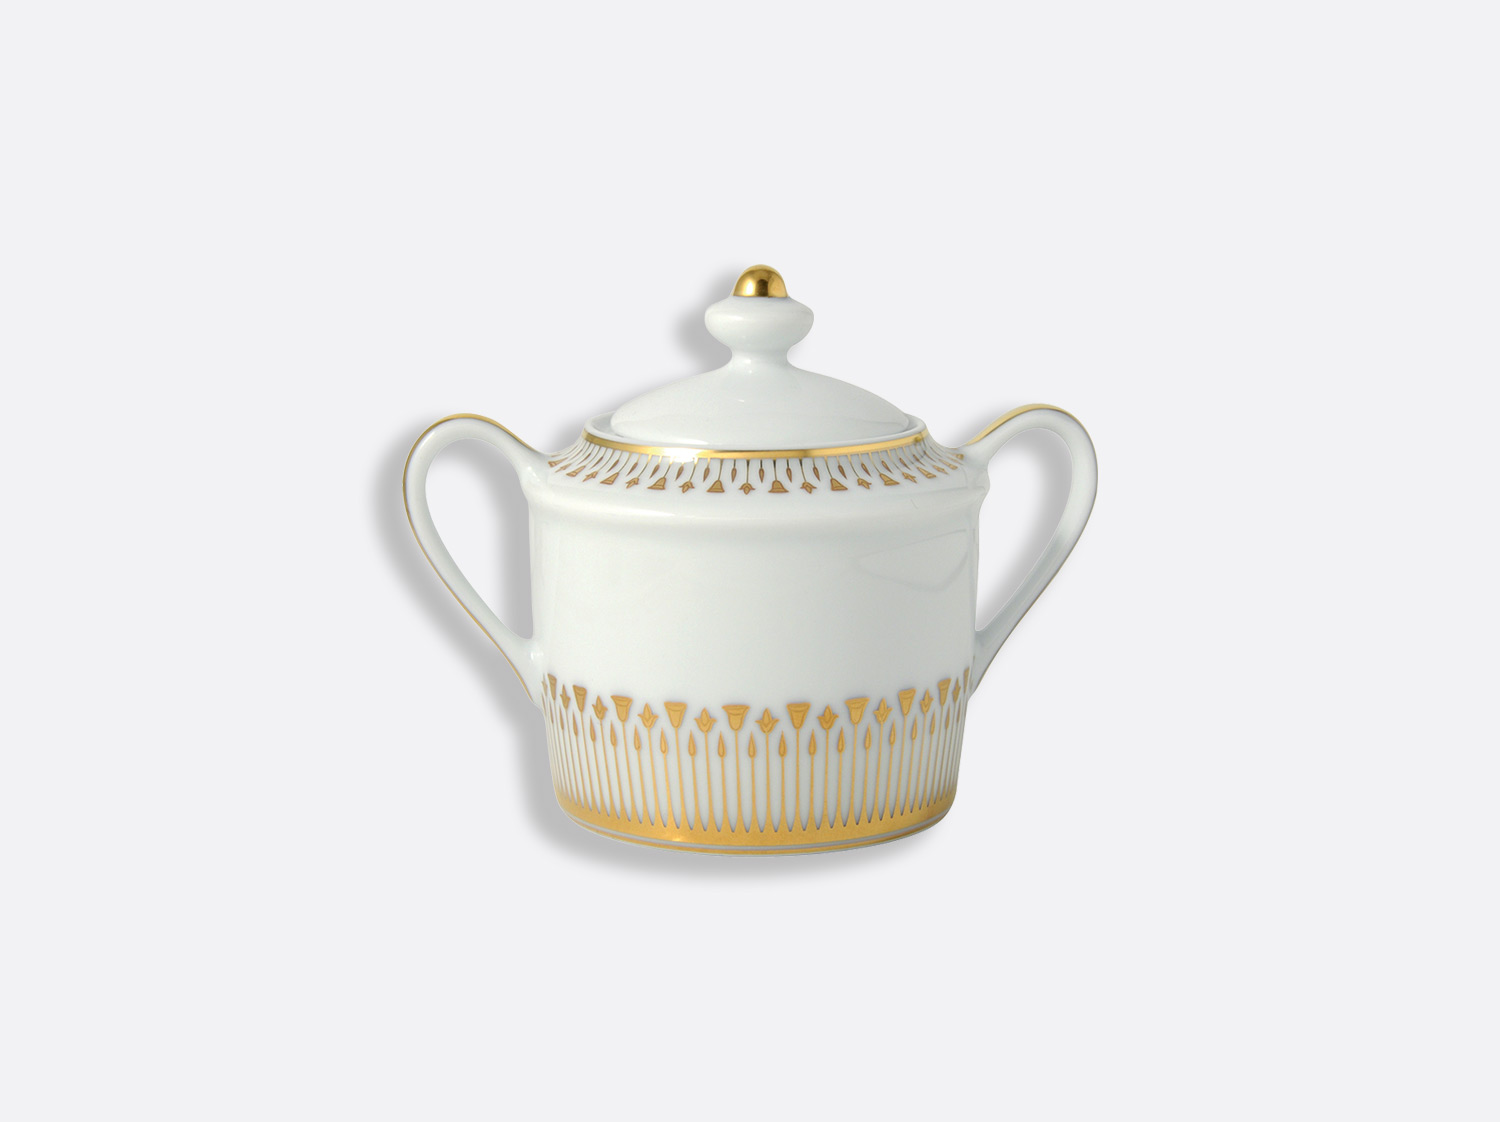 China Sugar bowl 6 cups of the collection Soleil levant | Bernardaud